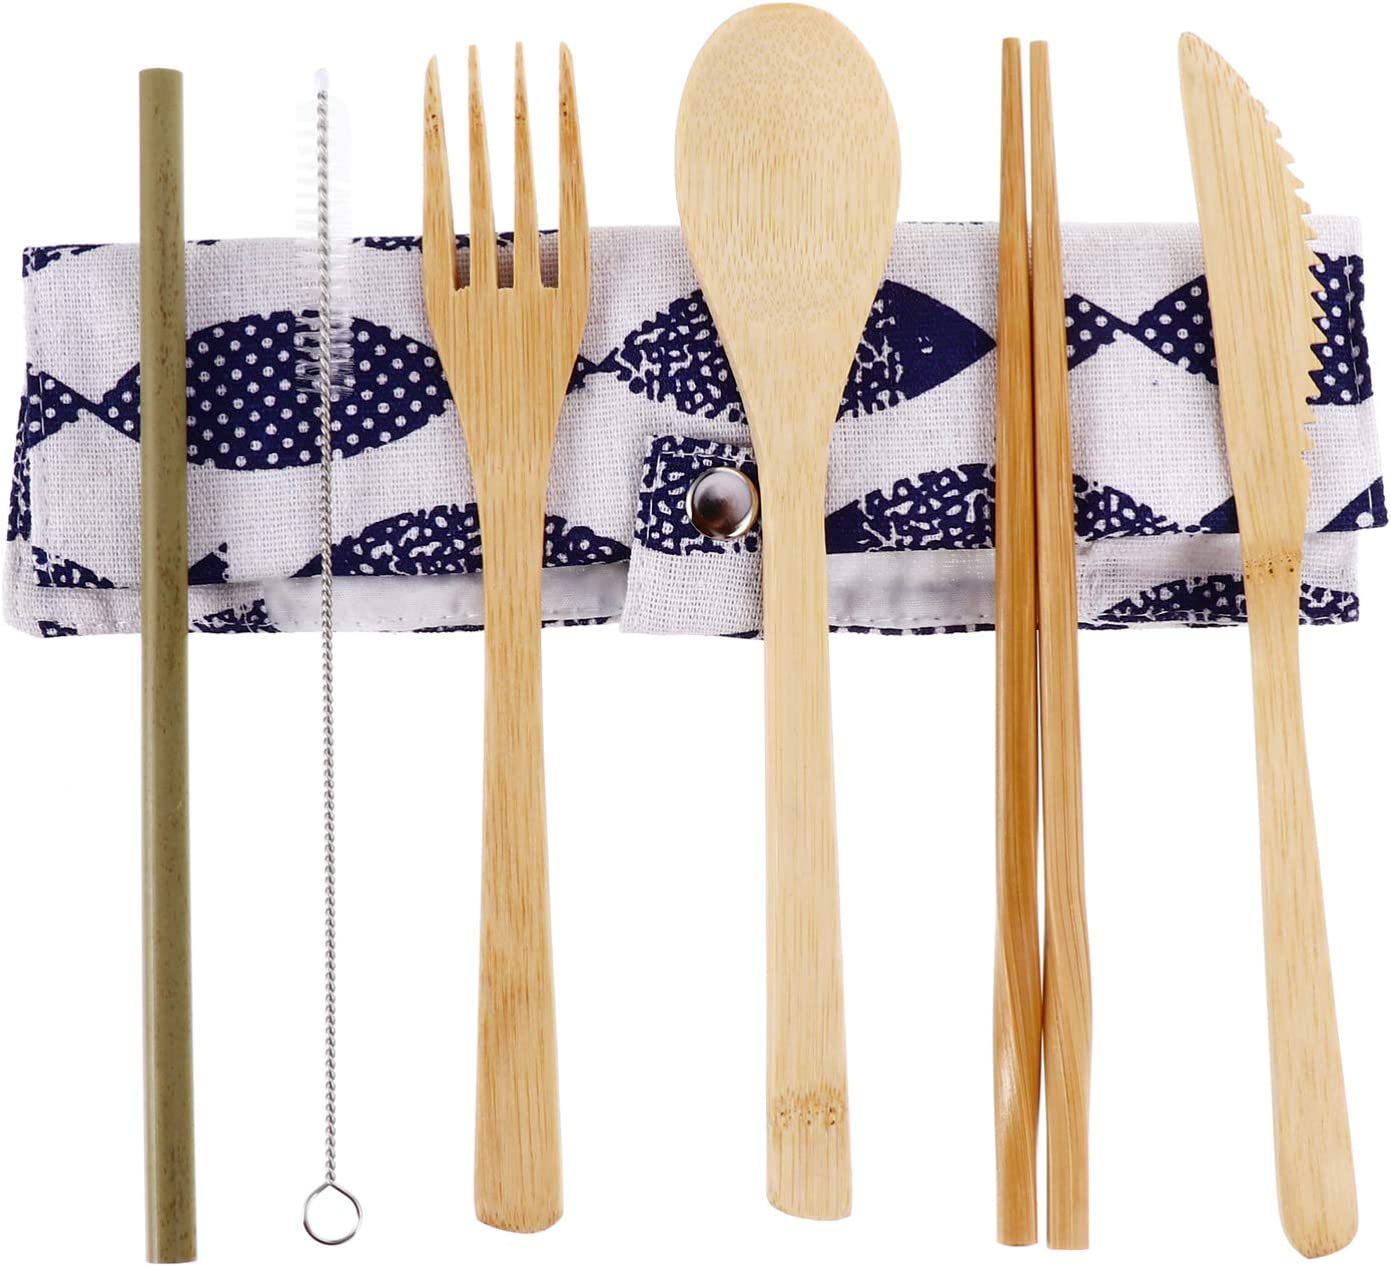 HEMOTON Bamboo Sales of SALE items from SEAL limited product new works Travel Utensils Cutlery with Pouch Set Spo Cotton